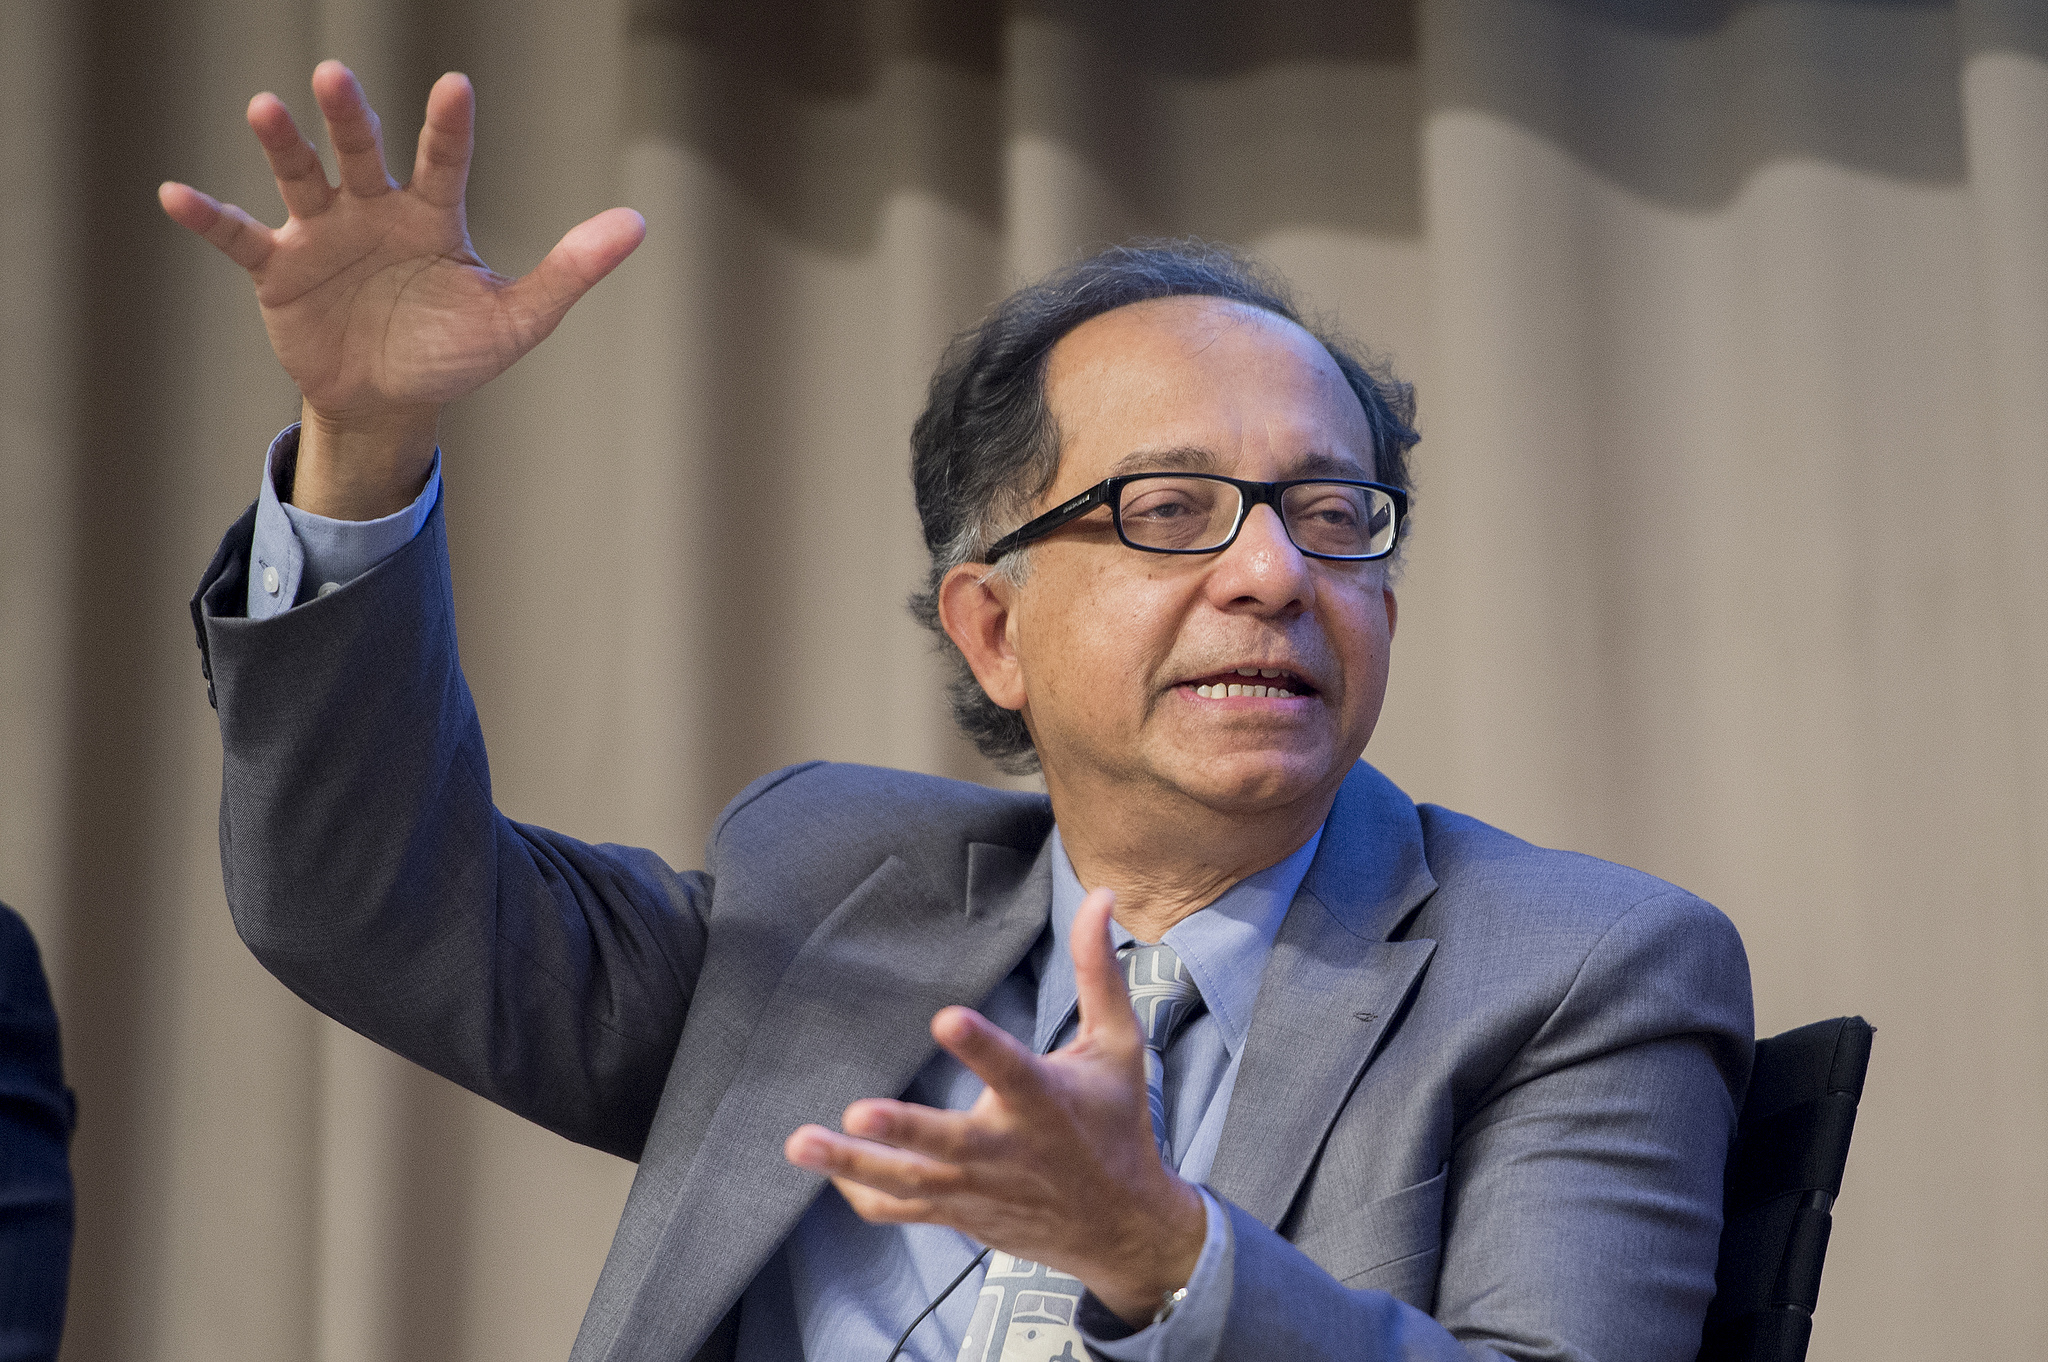 Kaushik Basu (image: Flickr/World Bank, Deborah Campos)